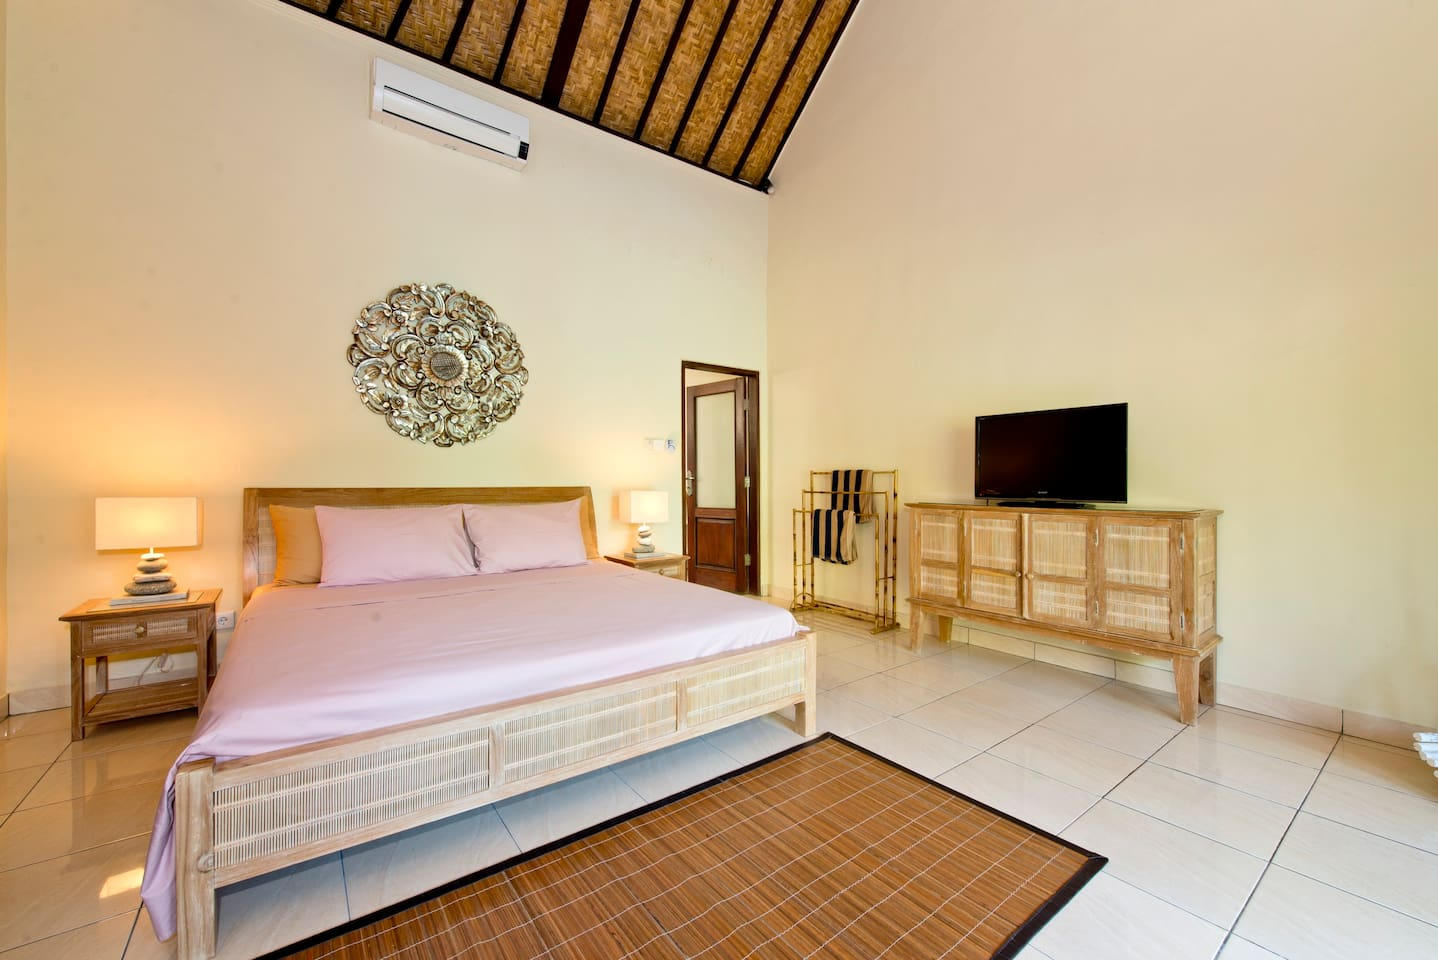 Your private bedroom kingsize, TV cable, safety box, air con, fan